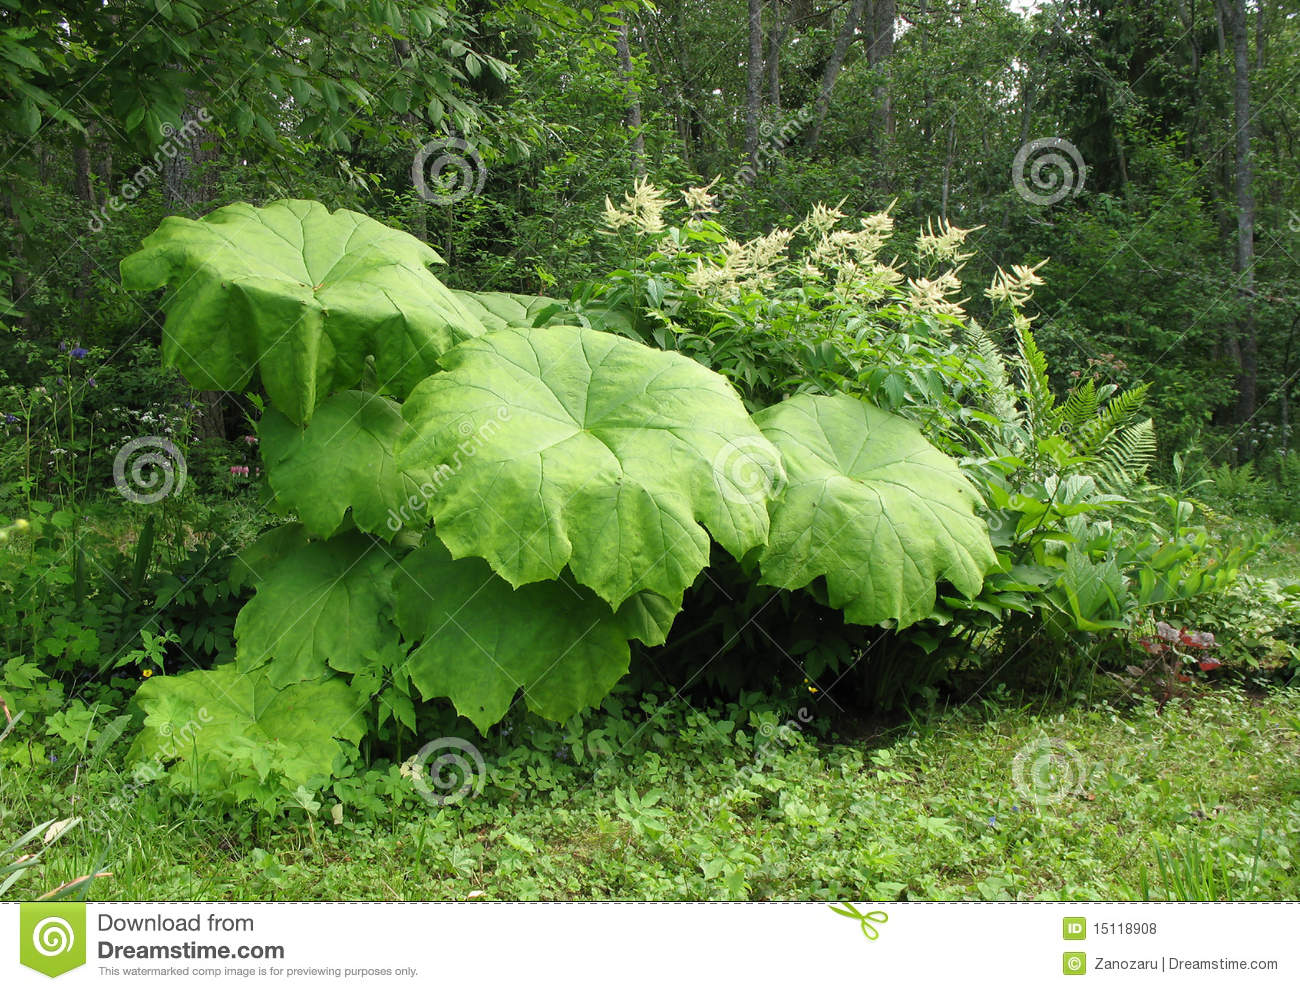 Astilboides Tabularis And Aruncus Dioicus Royalty Free Stock.